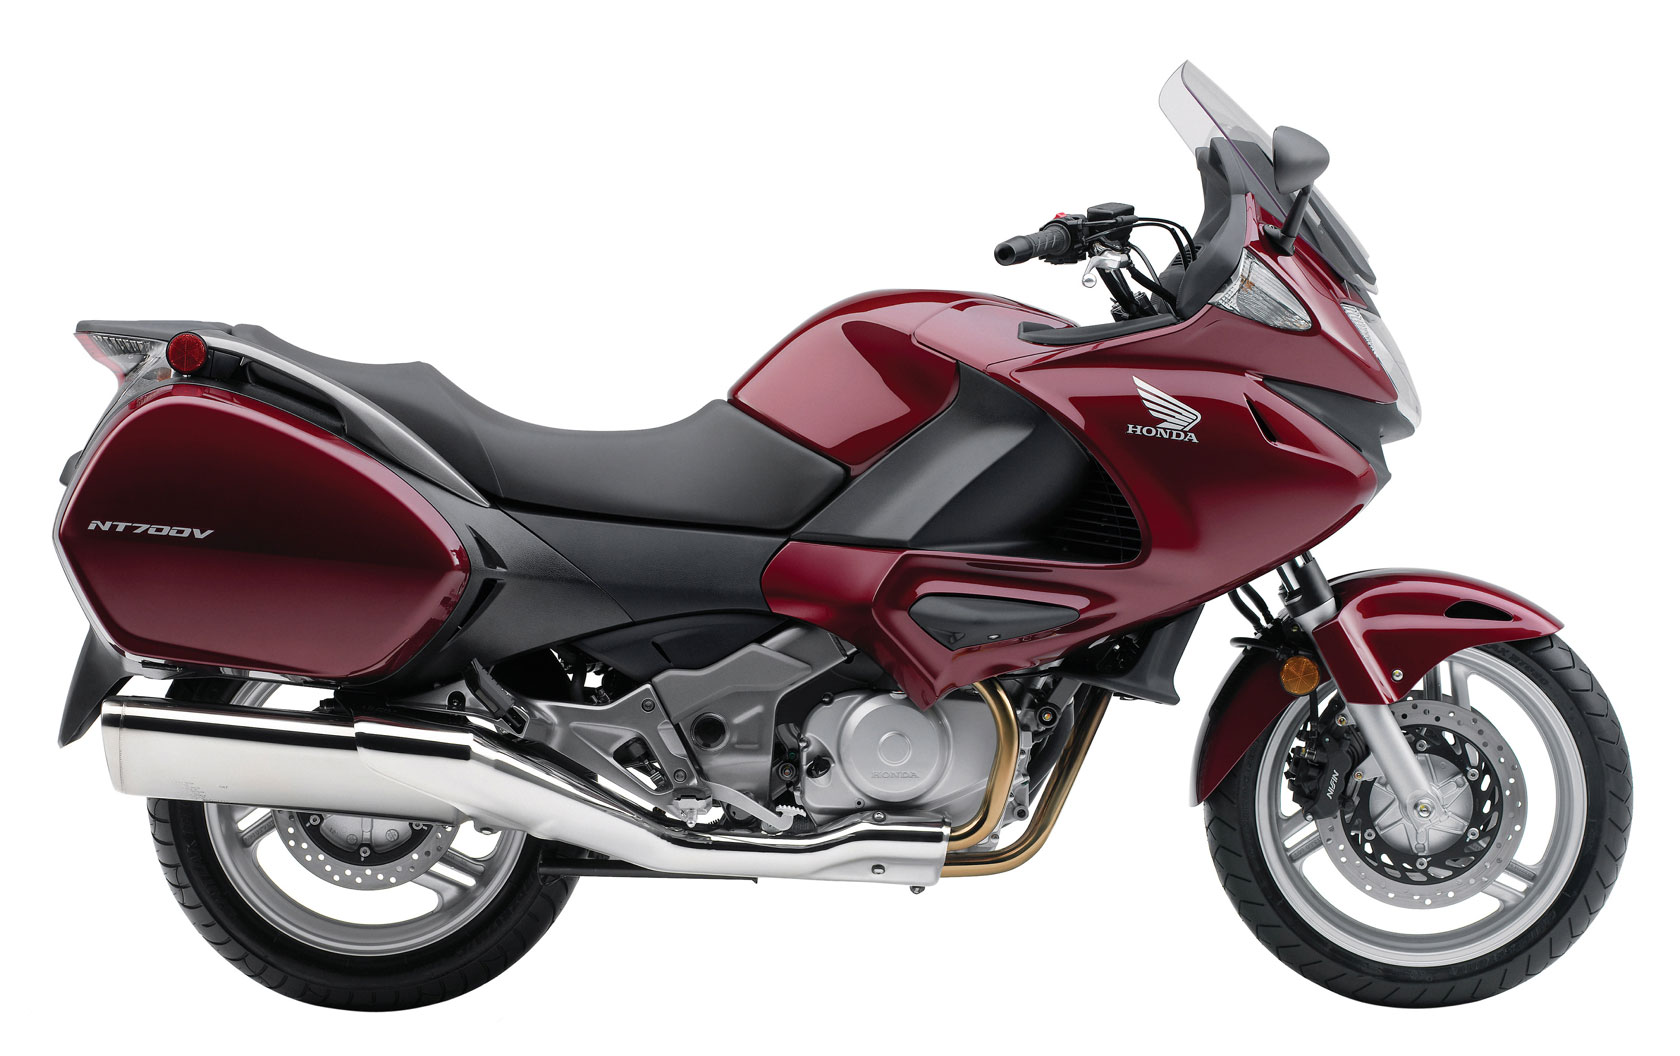 2010 Honda NT700V Varadero Side View